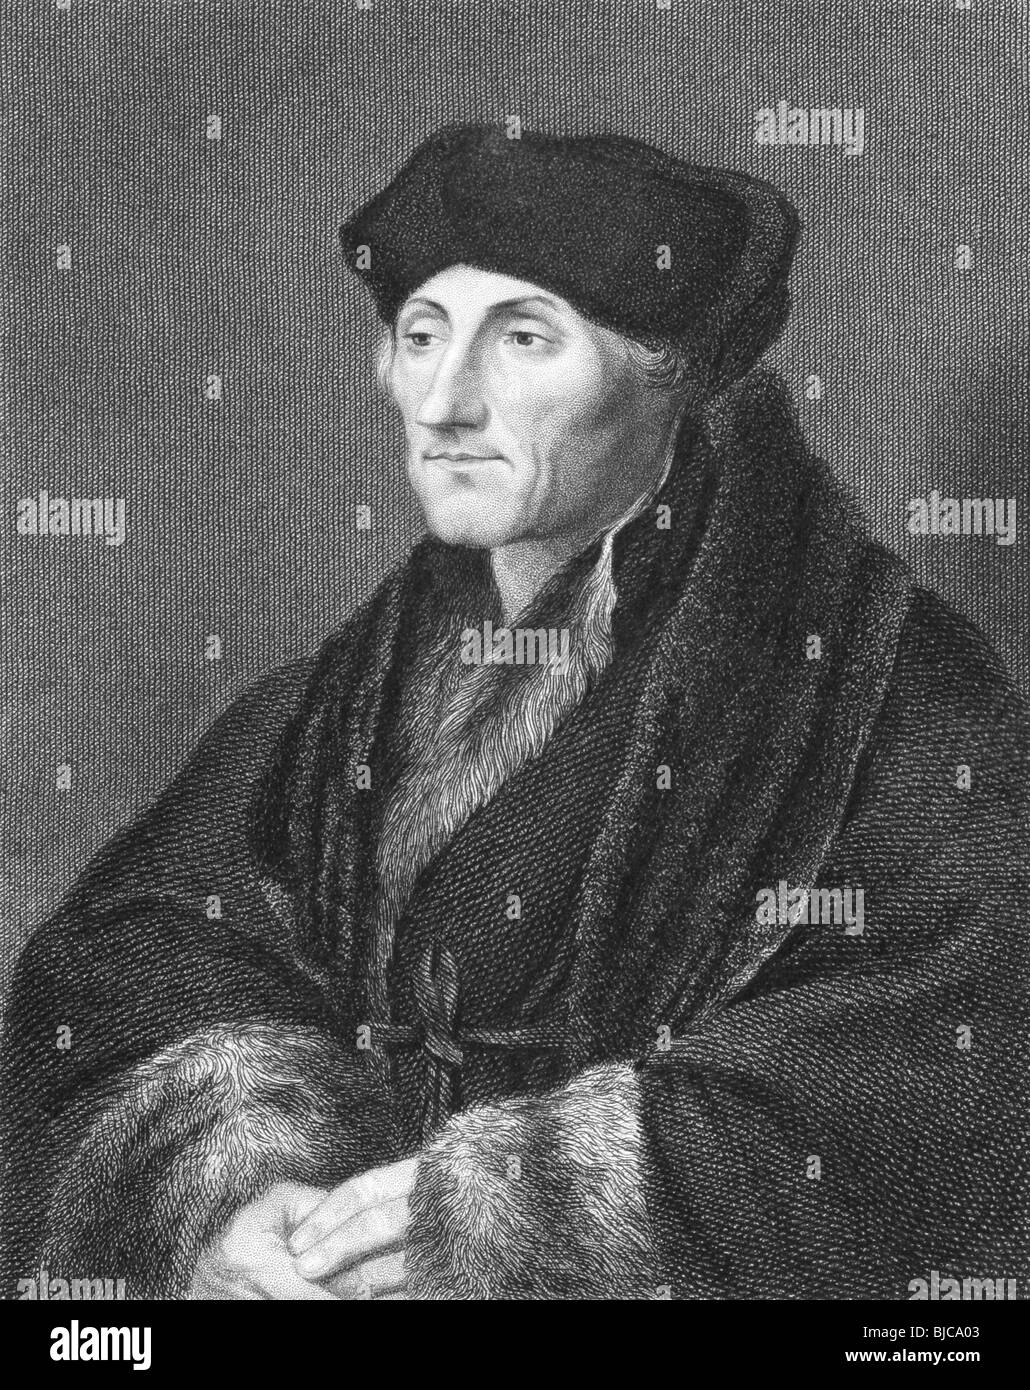 Erasmus (1466/1469-1536) on engraving from the 1800s. Dutch Renaissance humanist Catholic priest and theologian. - Stock Image